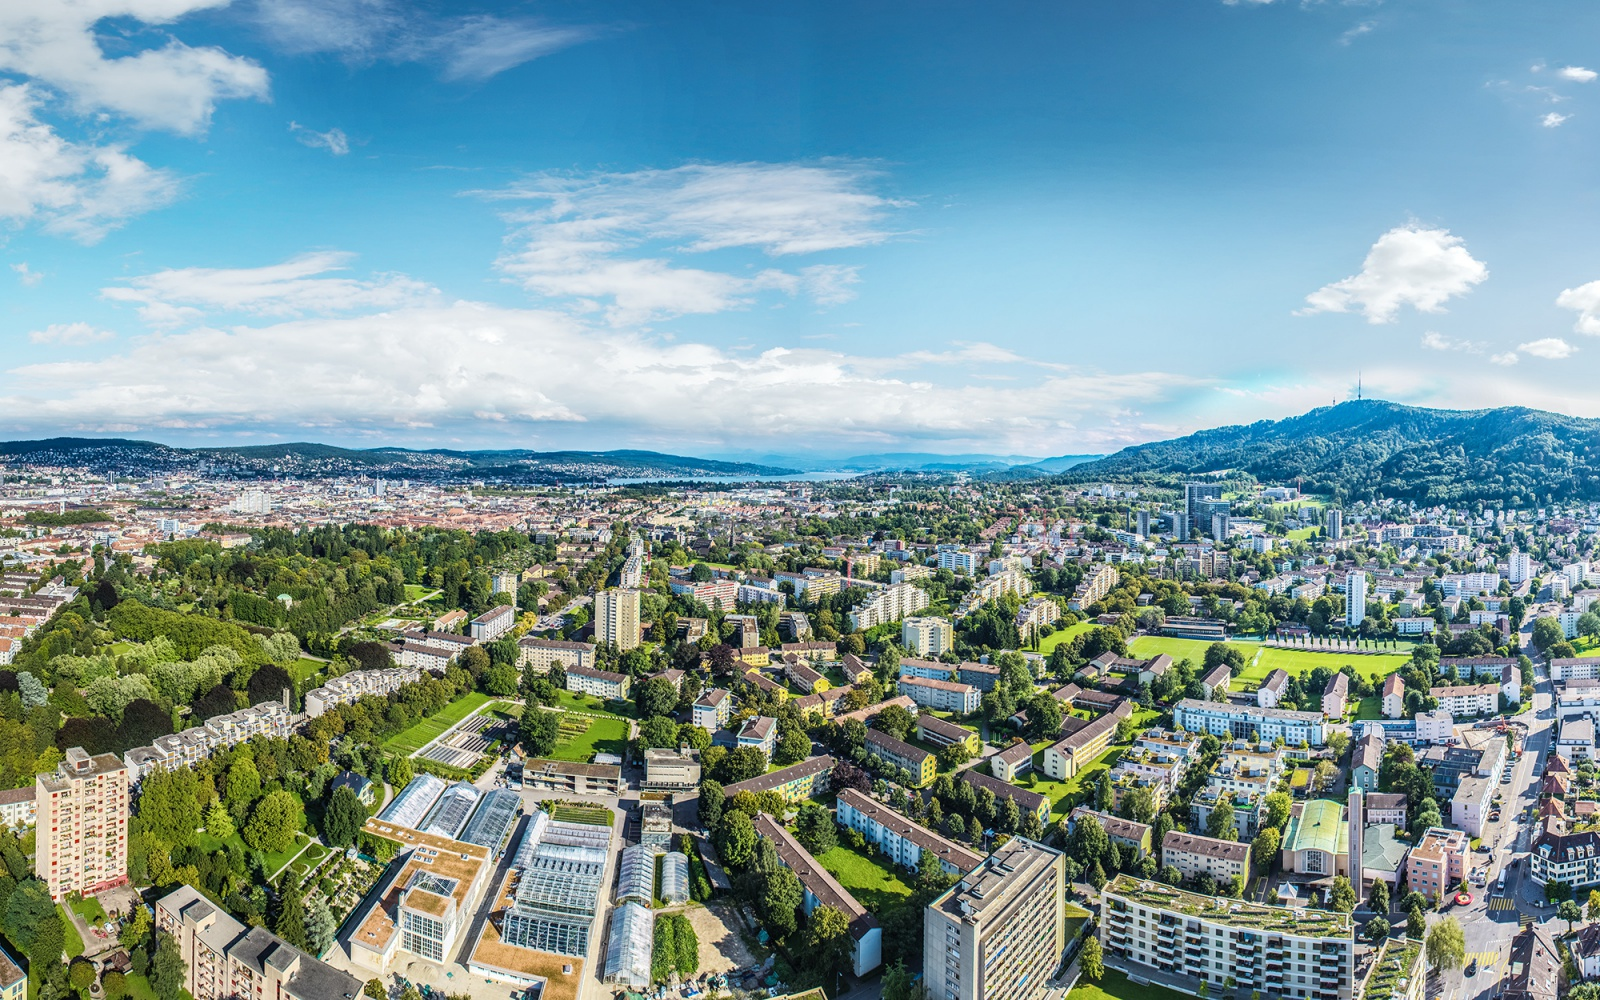 Panorama Zürich - Case 1